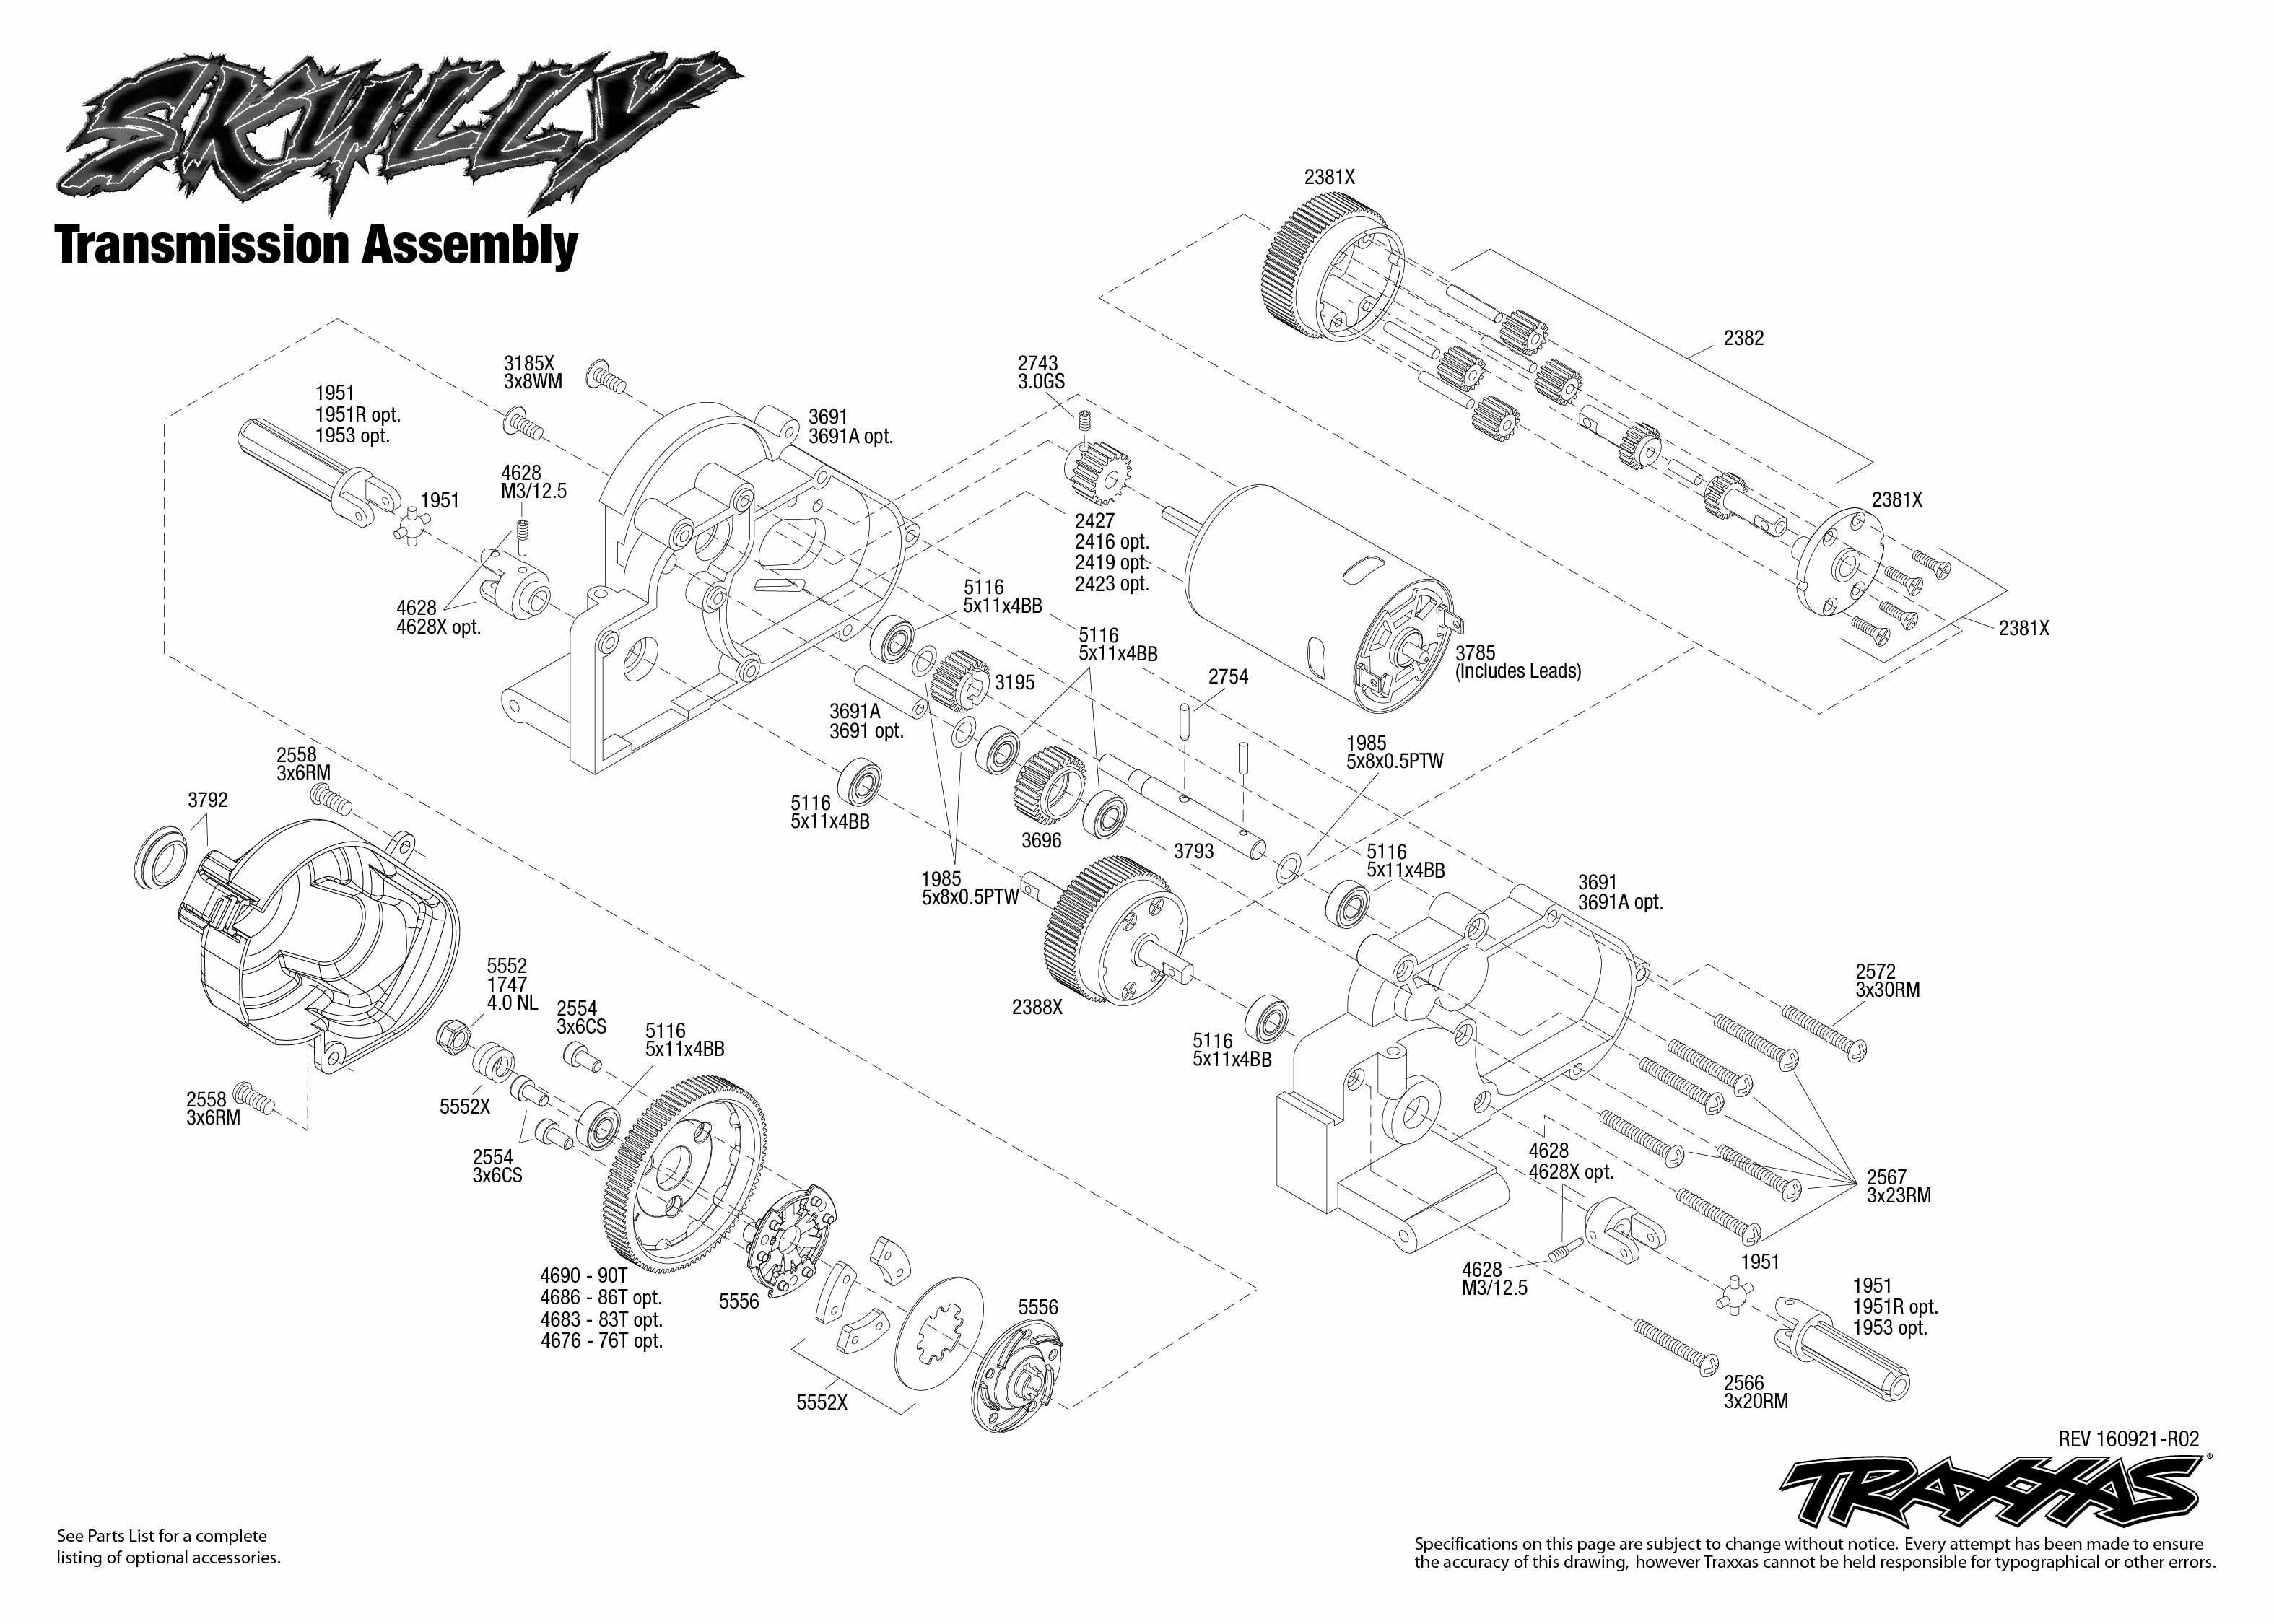 Skully 1 Transmission Assembly Exploded View